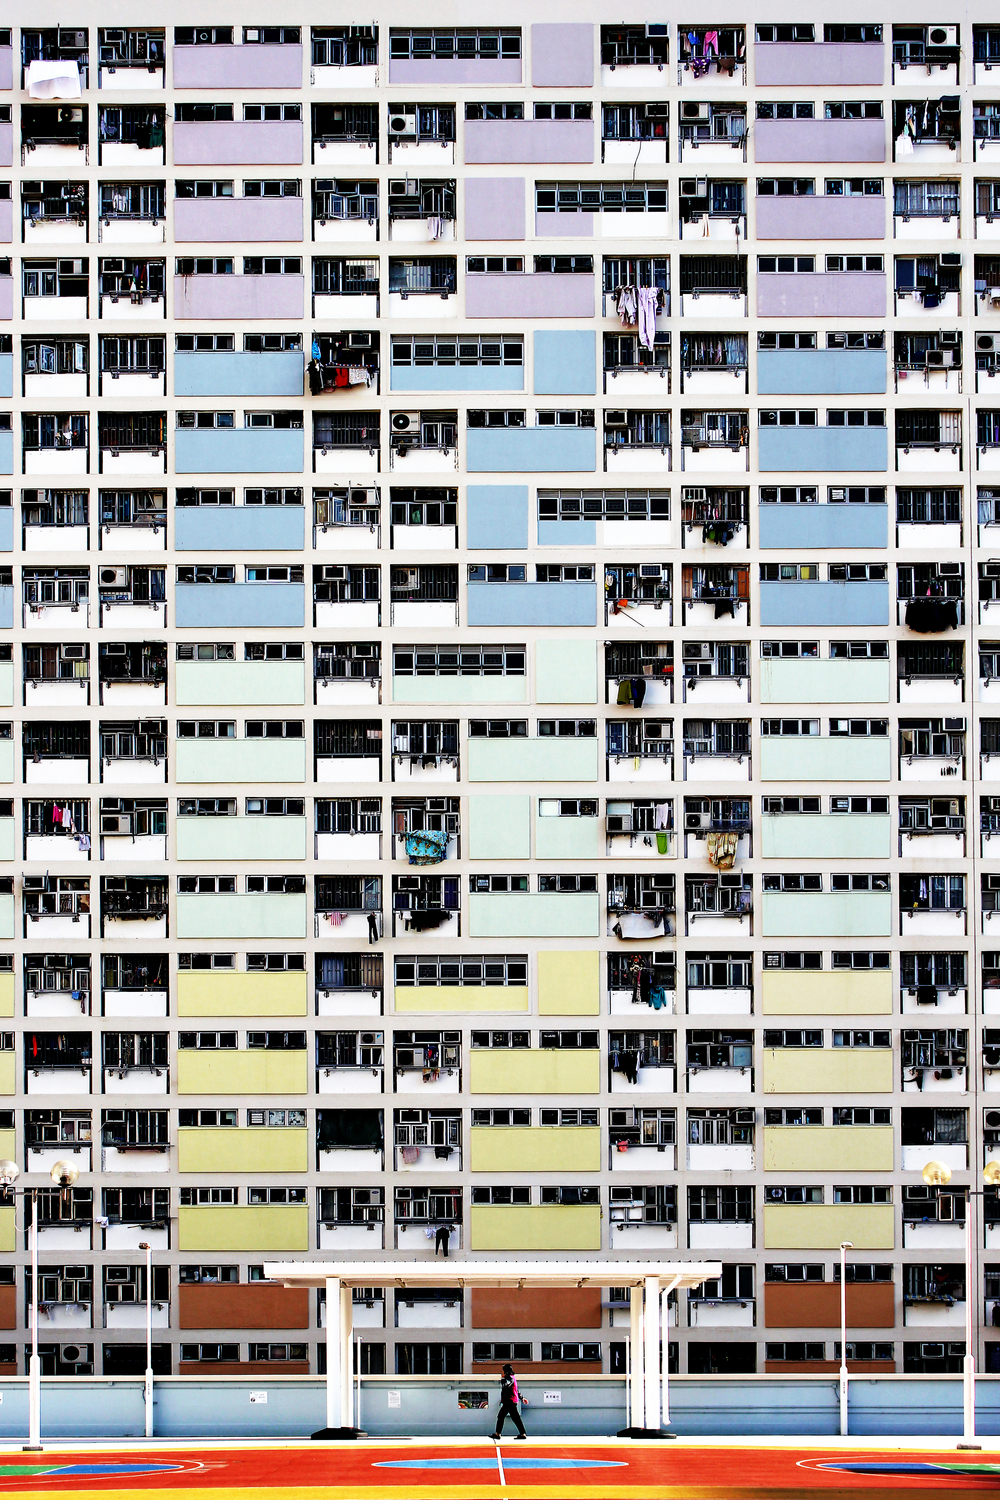 Choi Hung Estate by Eden Wu Photography